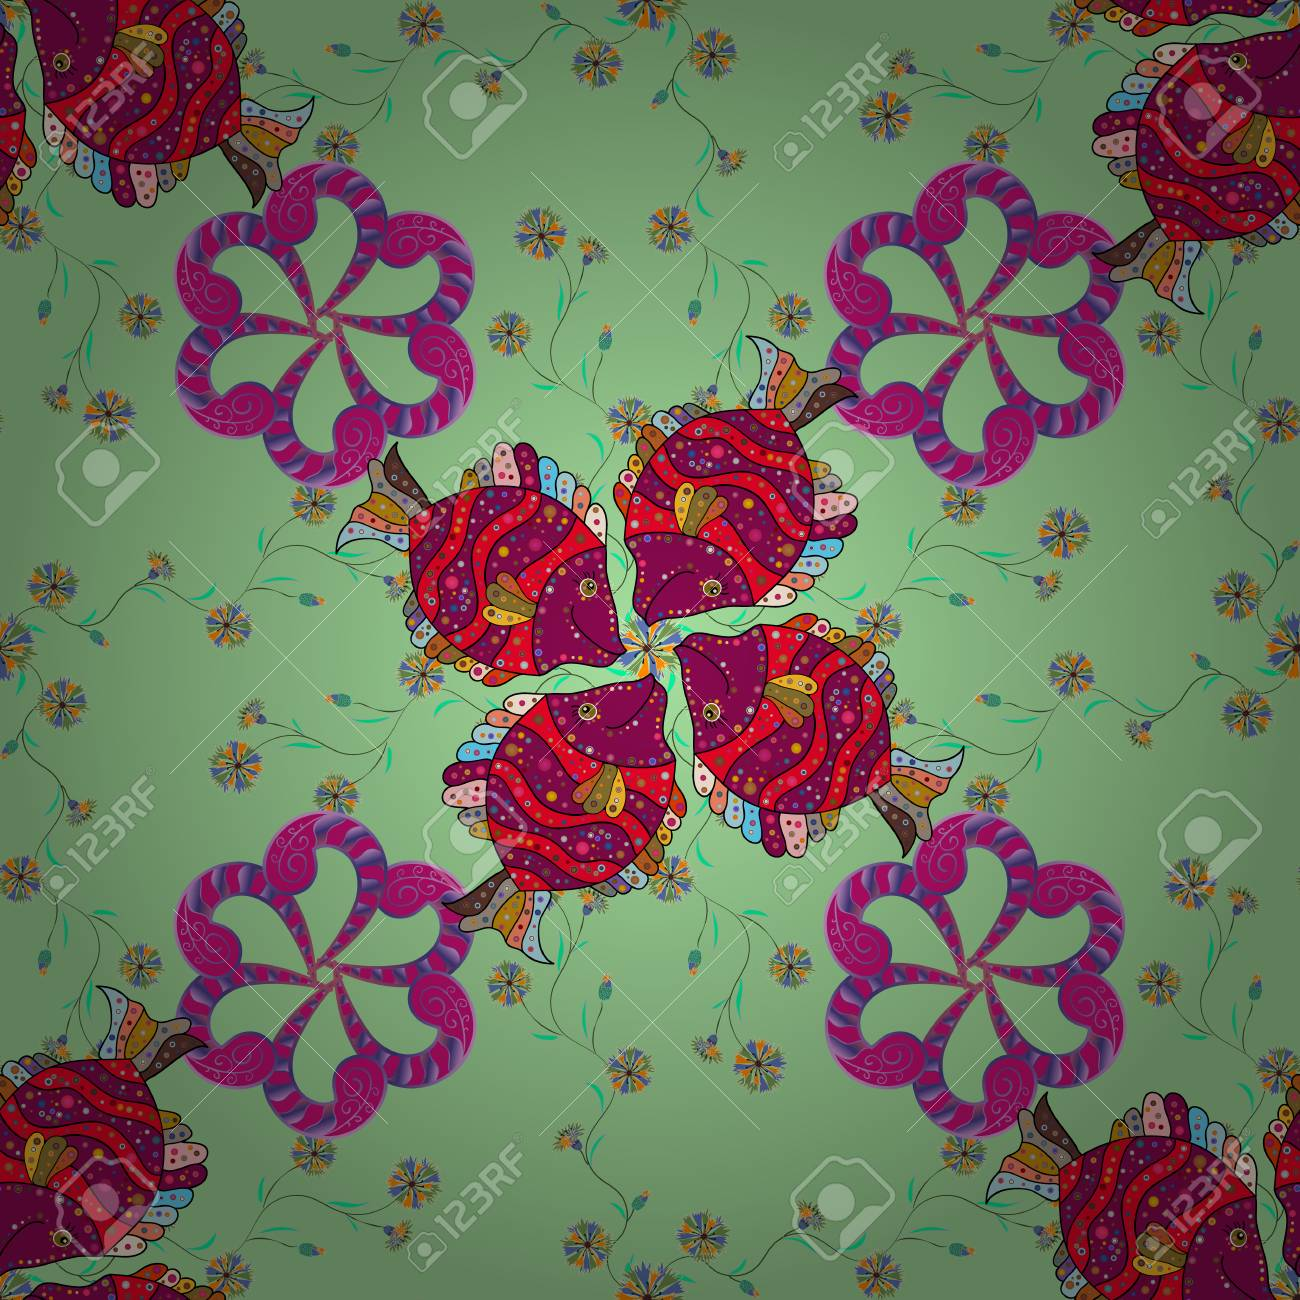 Superb The Elegant The Template For Fashion Prints. Modern Floral Background.  Amazing Seamless Floral Pattern